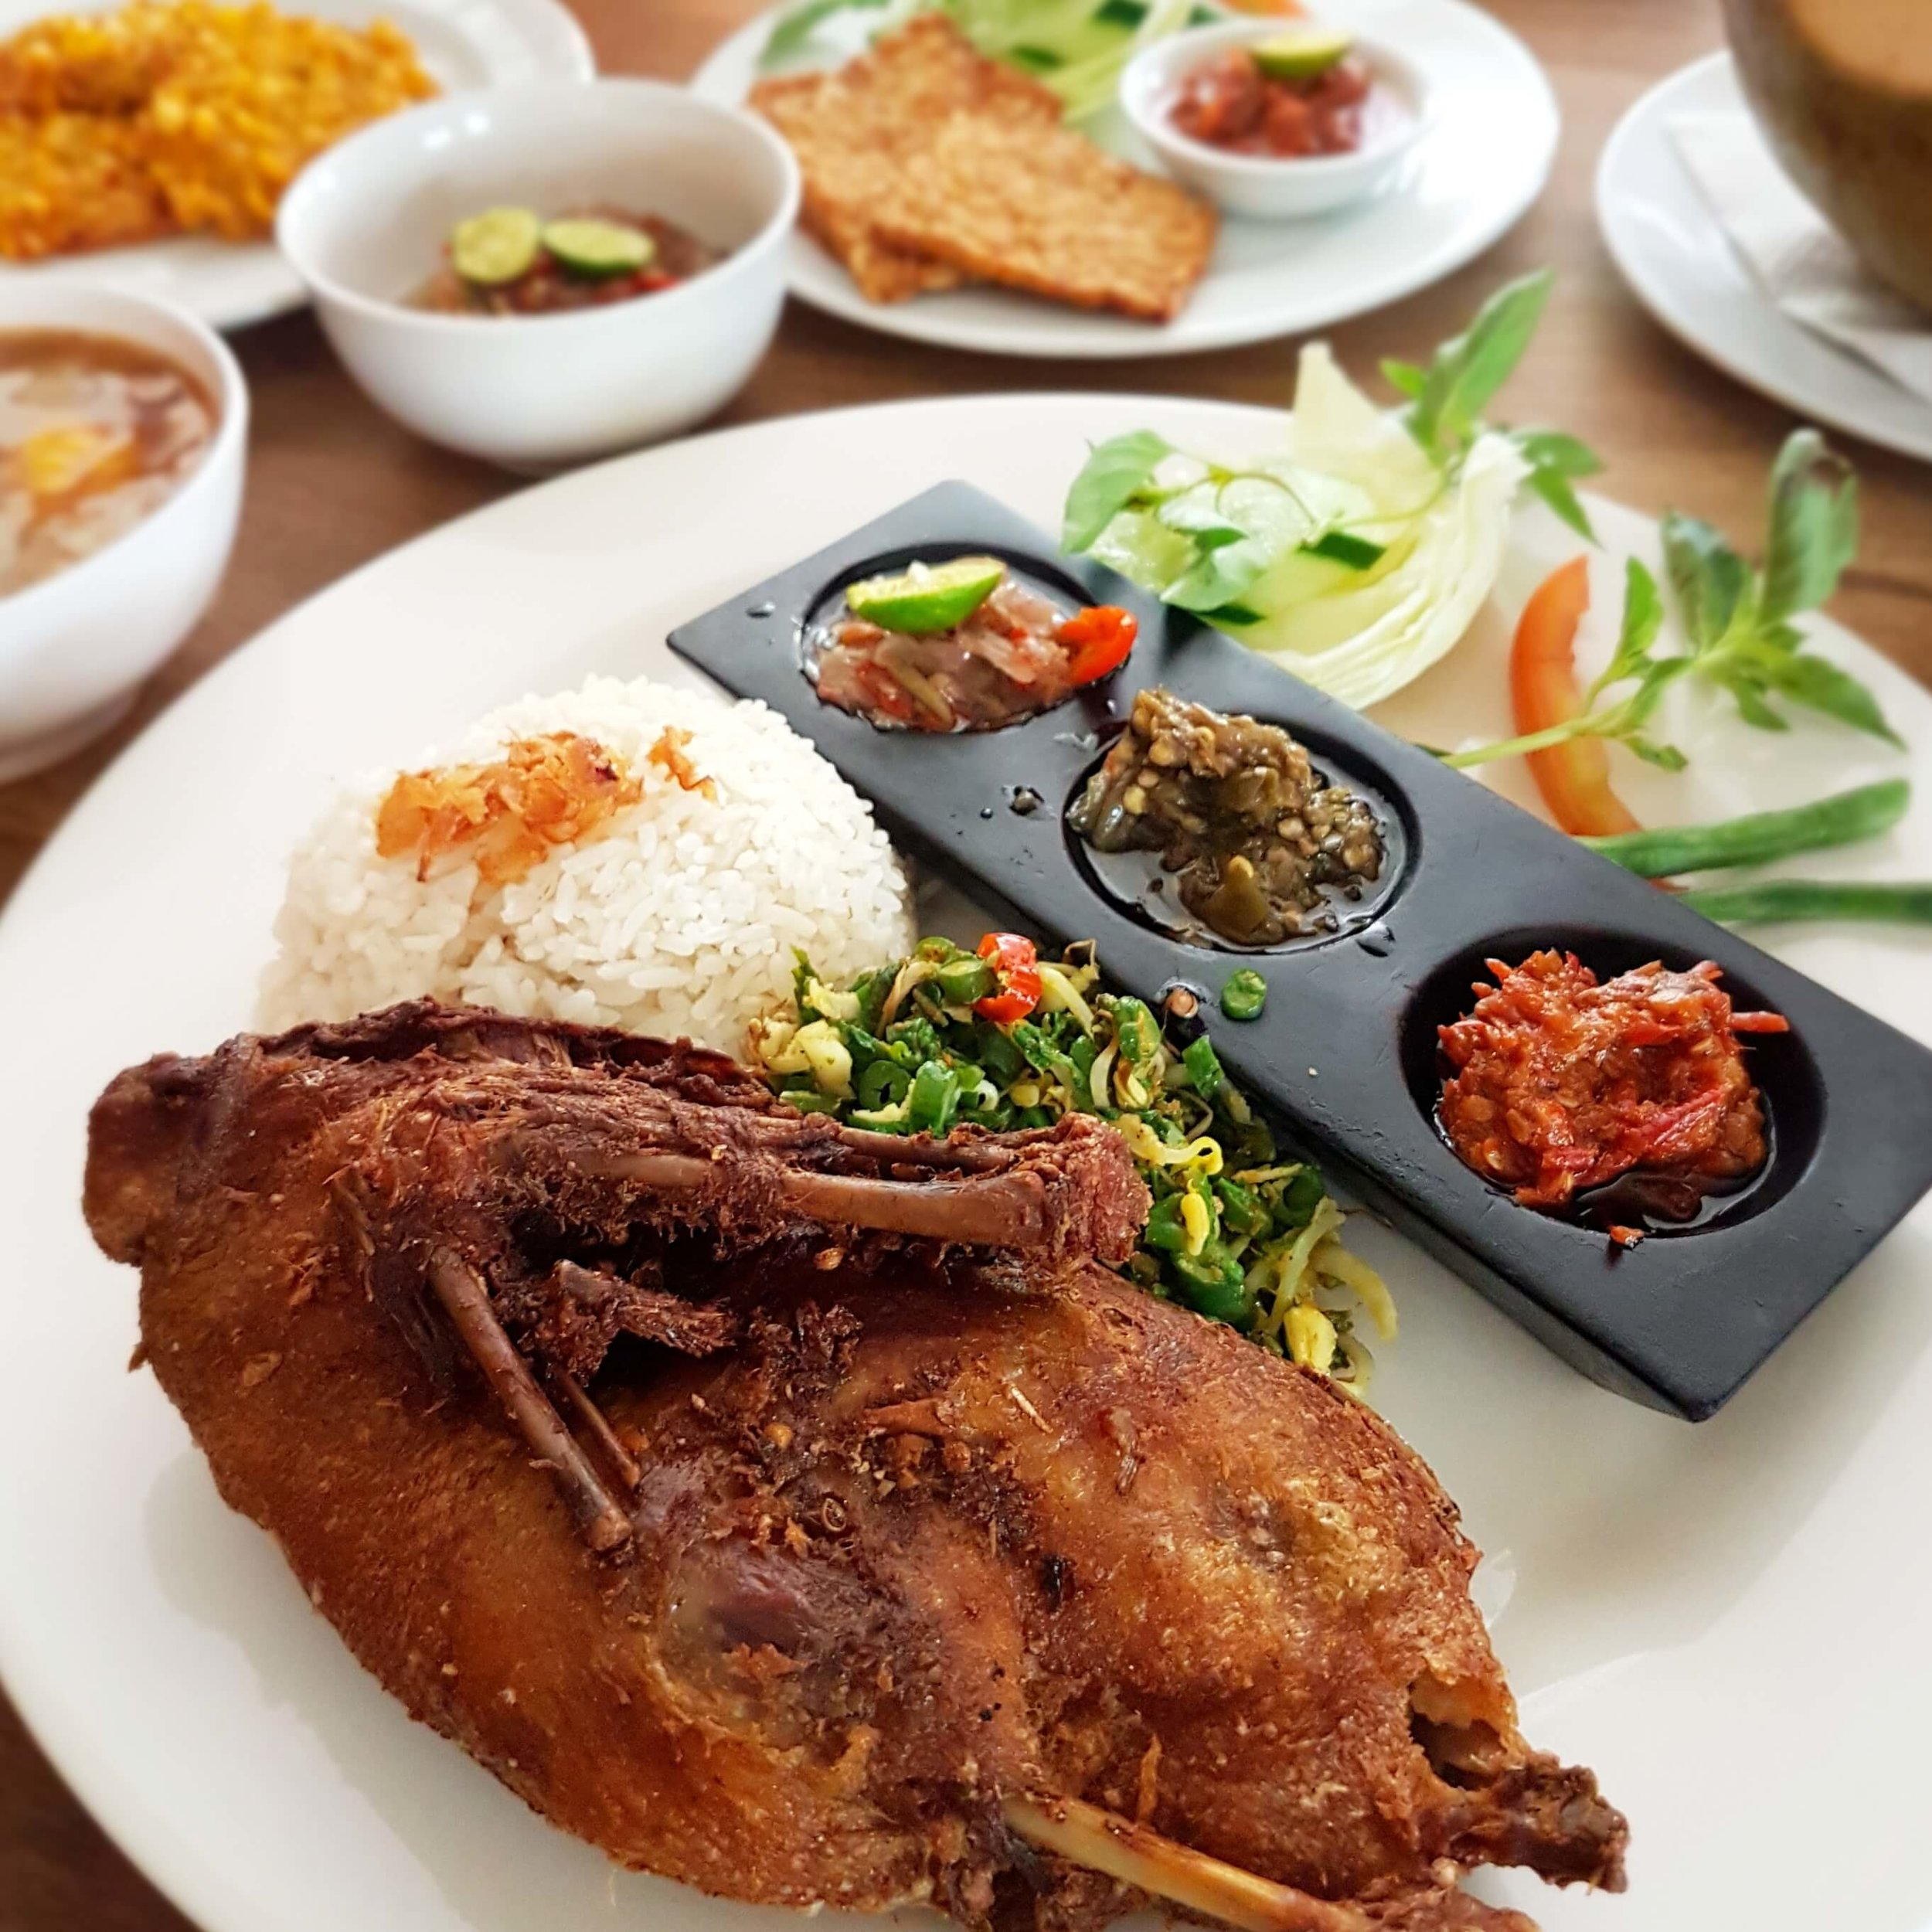 Crispy Duck at Waroeng Eropa | Bali, Indonesia | Photo: Tika L